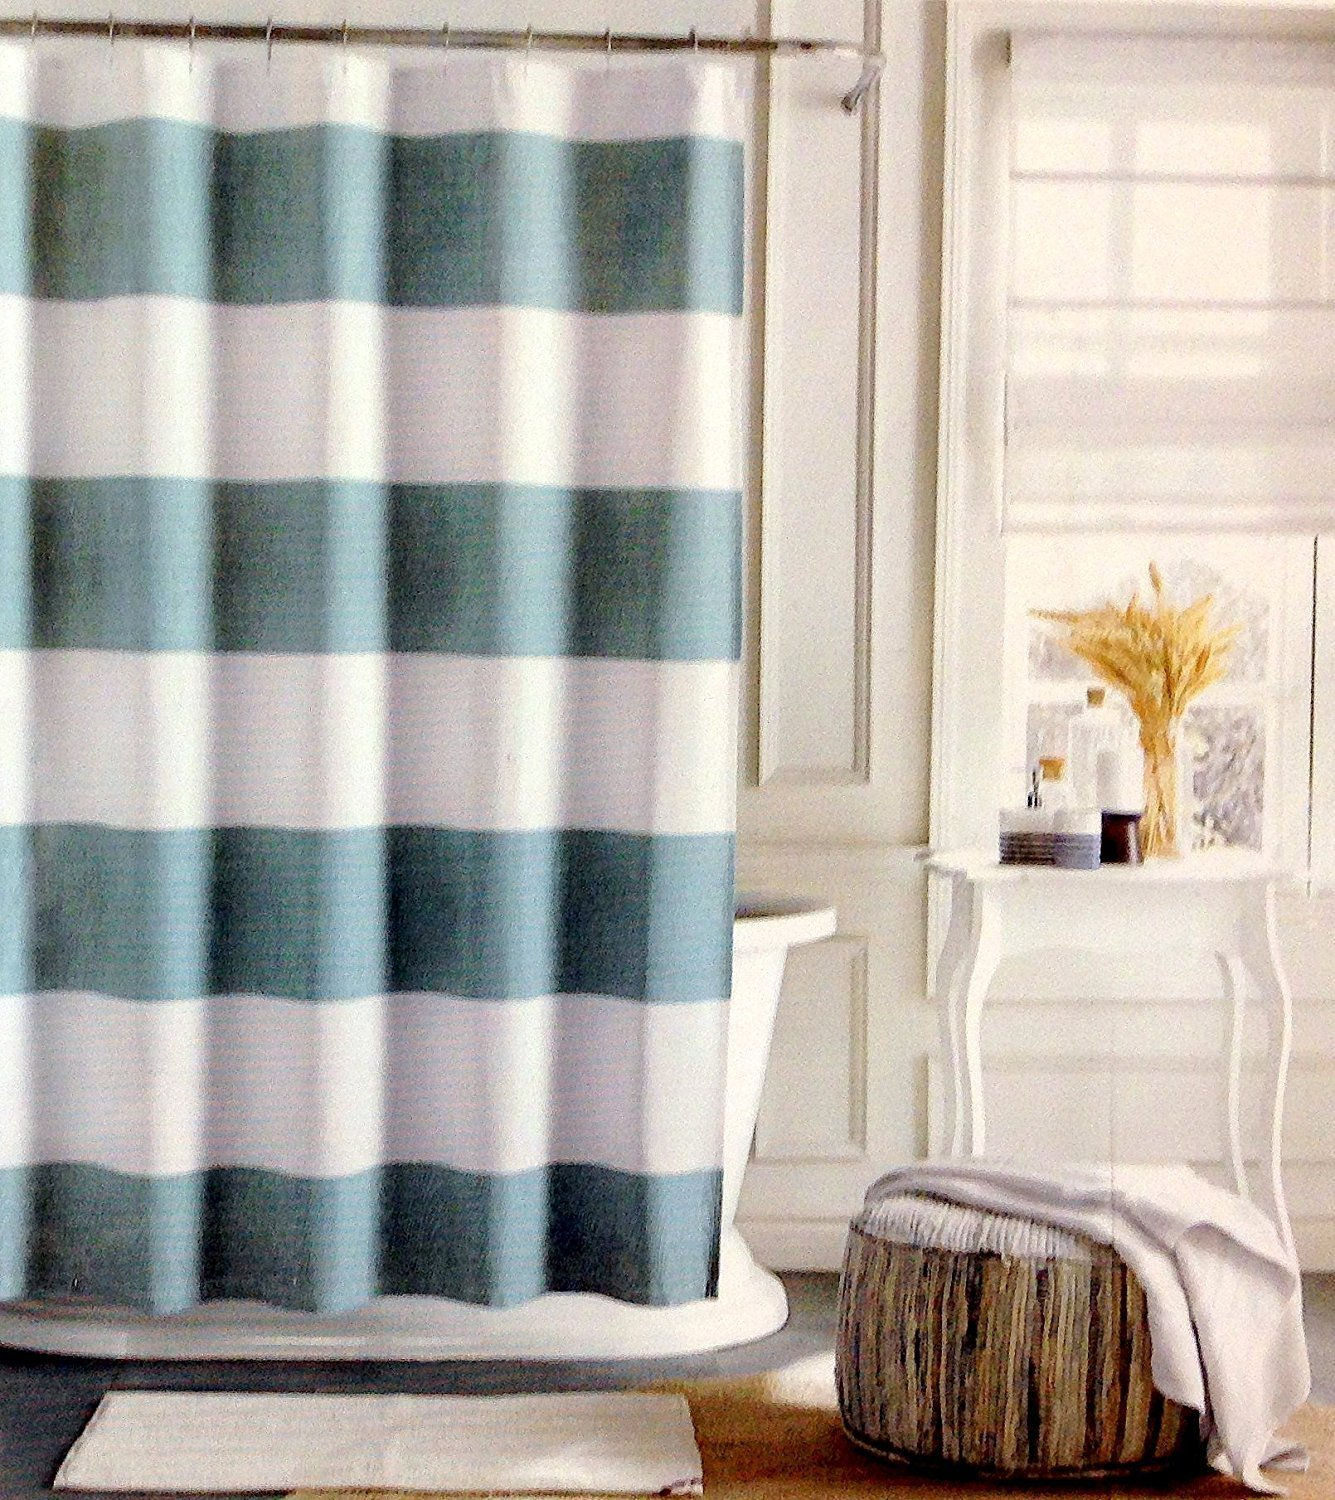 Tommy Hilfiger Cabana Stripe Aqua and White Shower Curtain